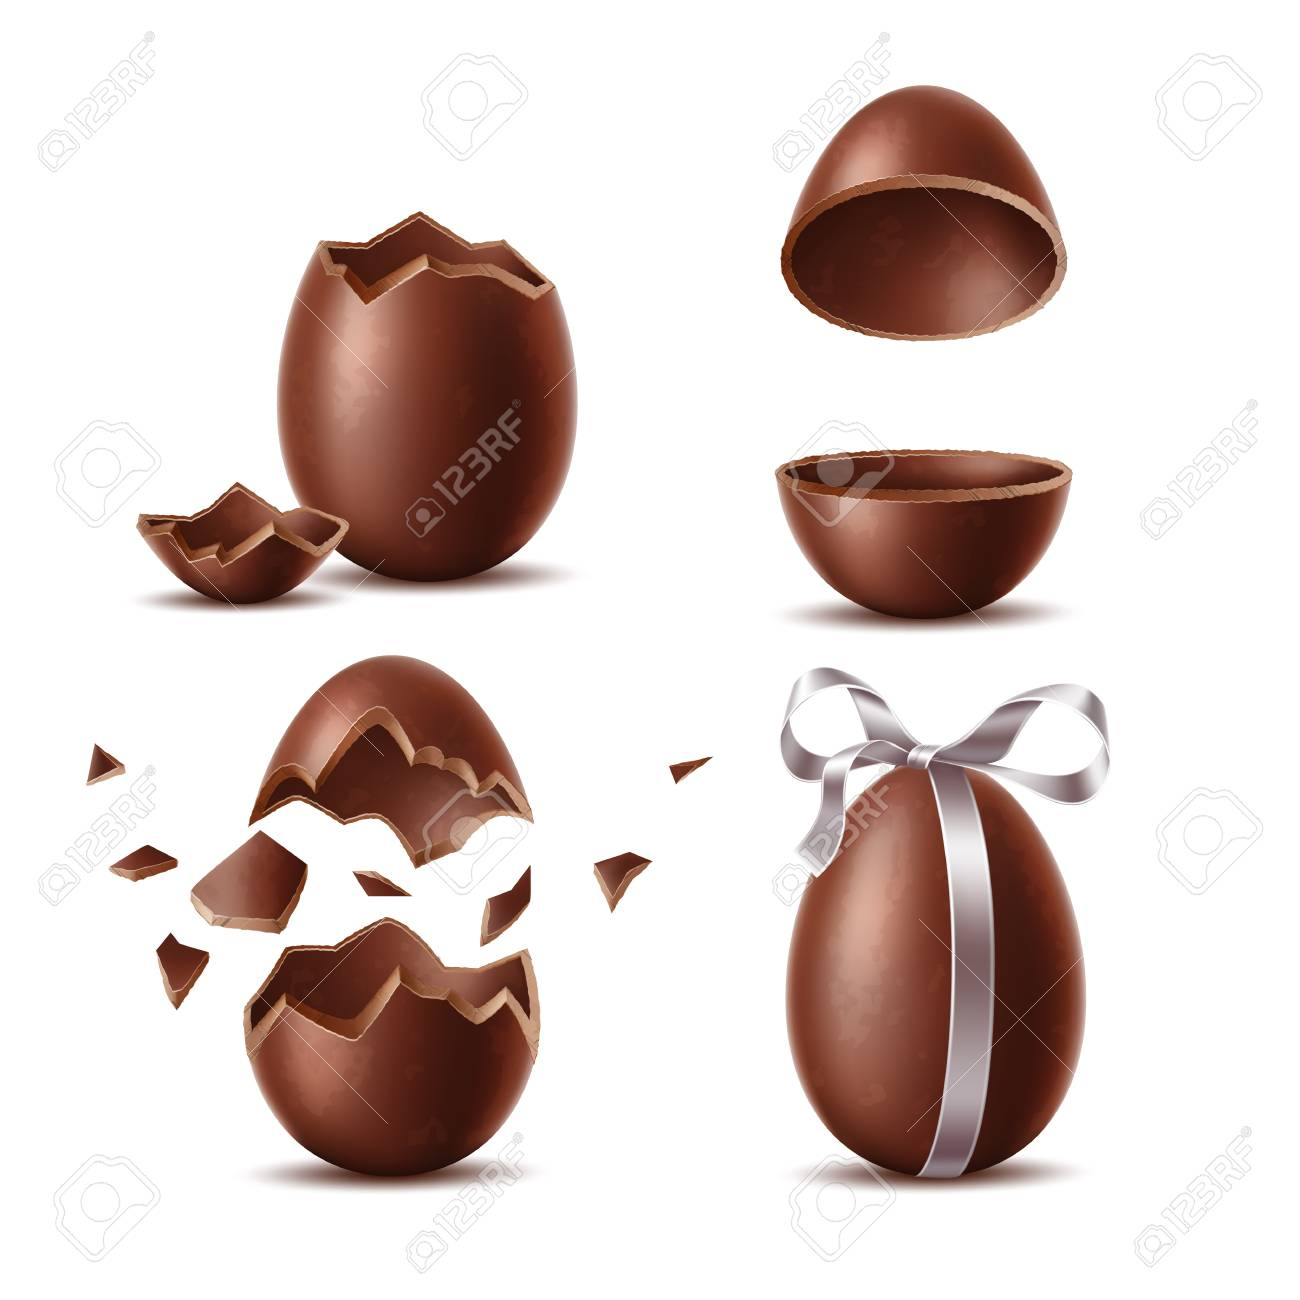 Realistic chocolate eggs set. Broken, exploded eggshell, two halves and whole egg with bow. Sweet easter holiday symbol. Vector dessert made of dark cocoa. Restaurant, cafe menu, celebration design. - 125914619